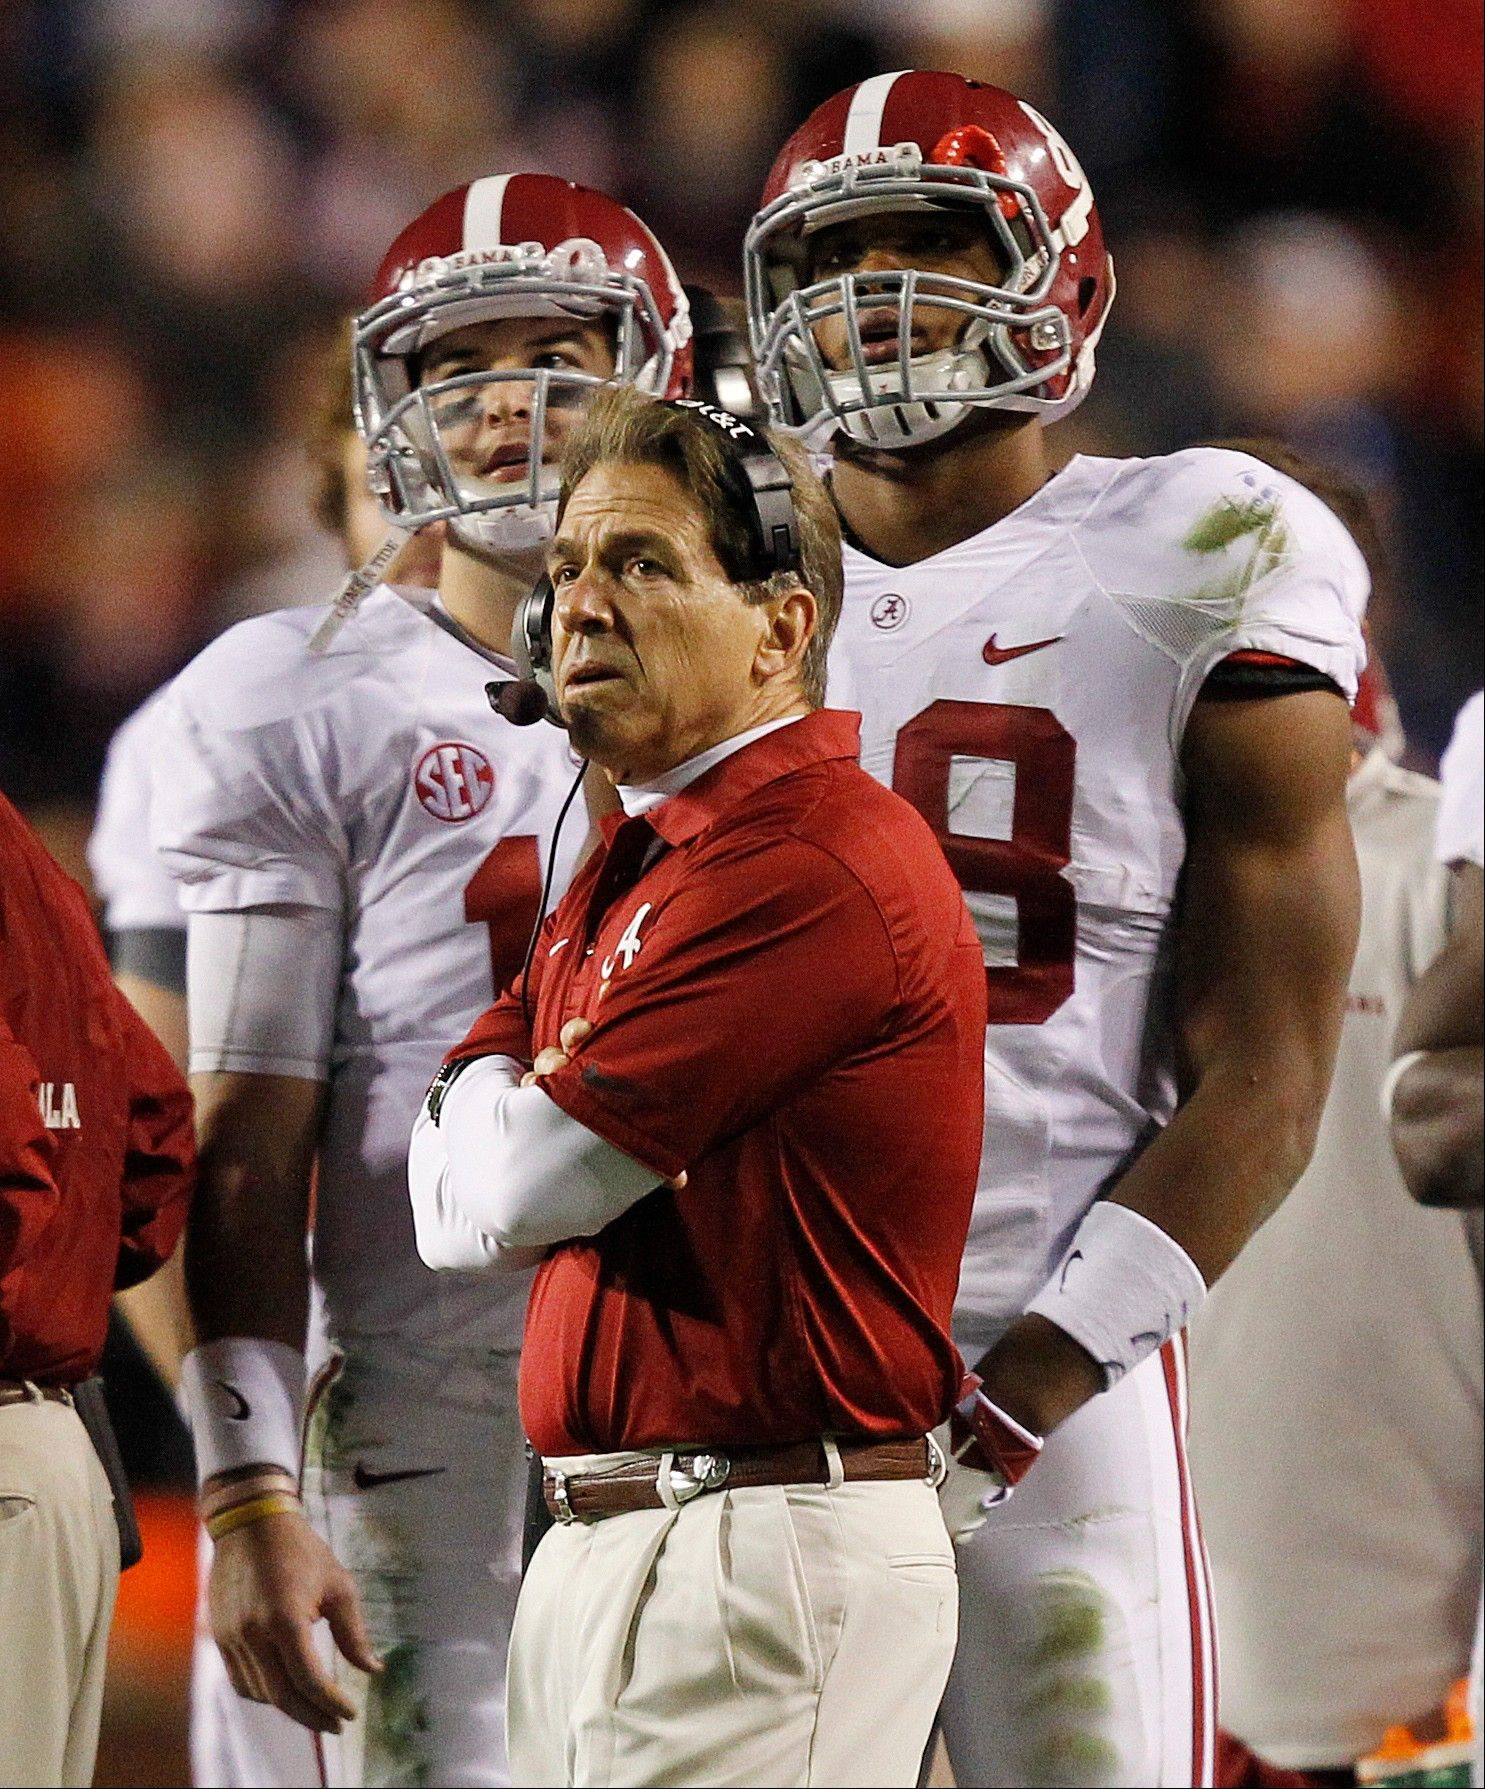 Alabama head coach Nick Saban passed up a 30-yard field goal opportunity against Auburn and his offense was stopped on foruth down. His decision to go for a last-second field-goal try to win the game backfired when Auburn returned the kick for a touchdown to win the game.